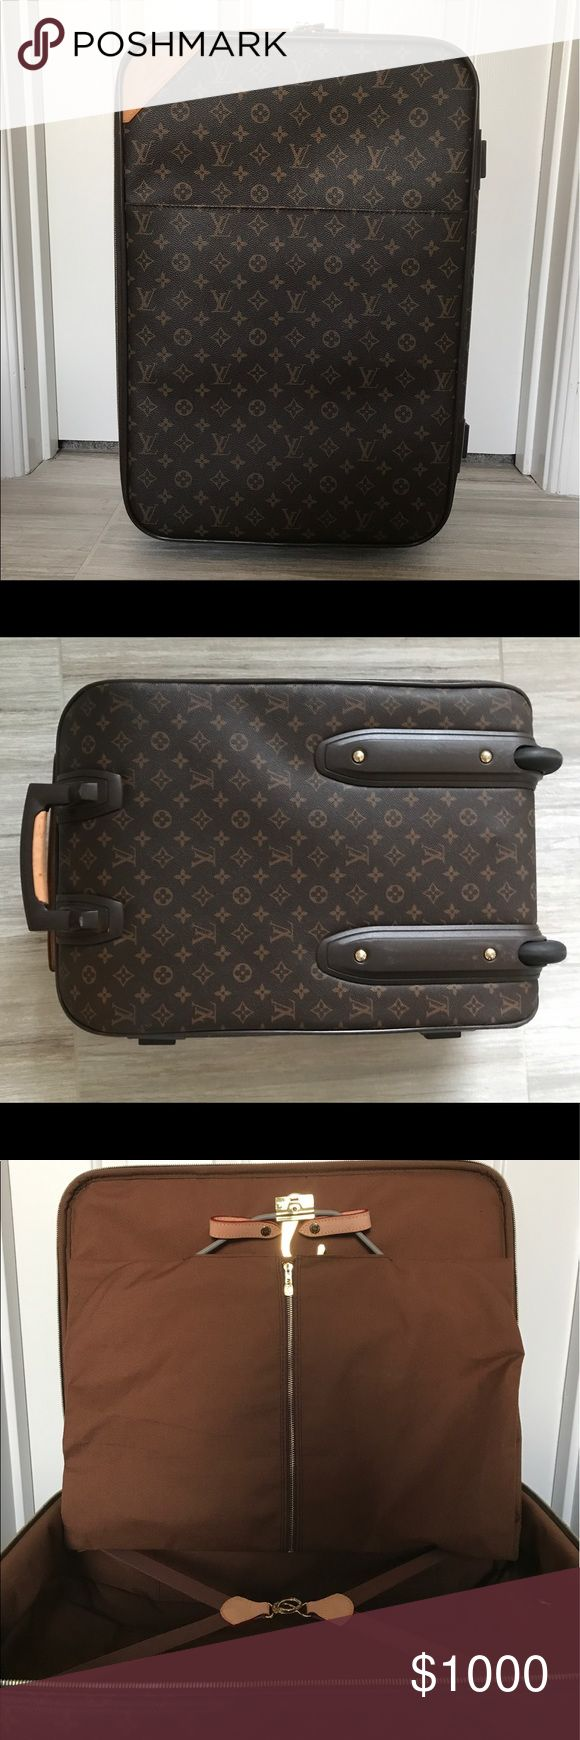 25 best ideas about luggage sizes on pinterest carry on